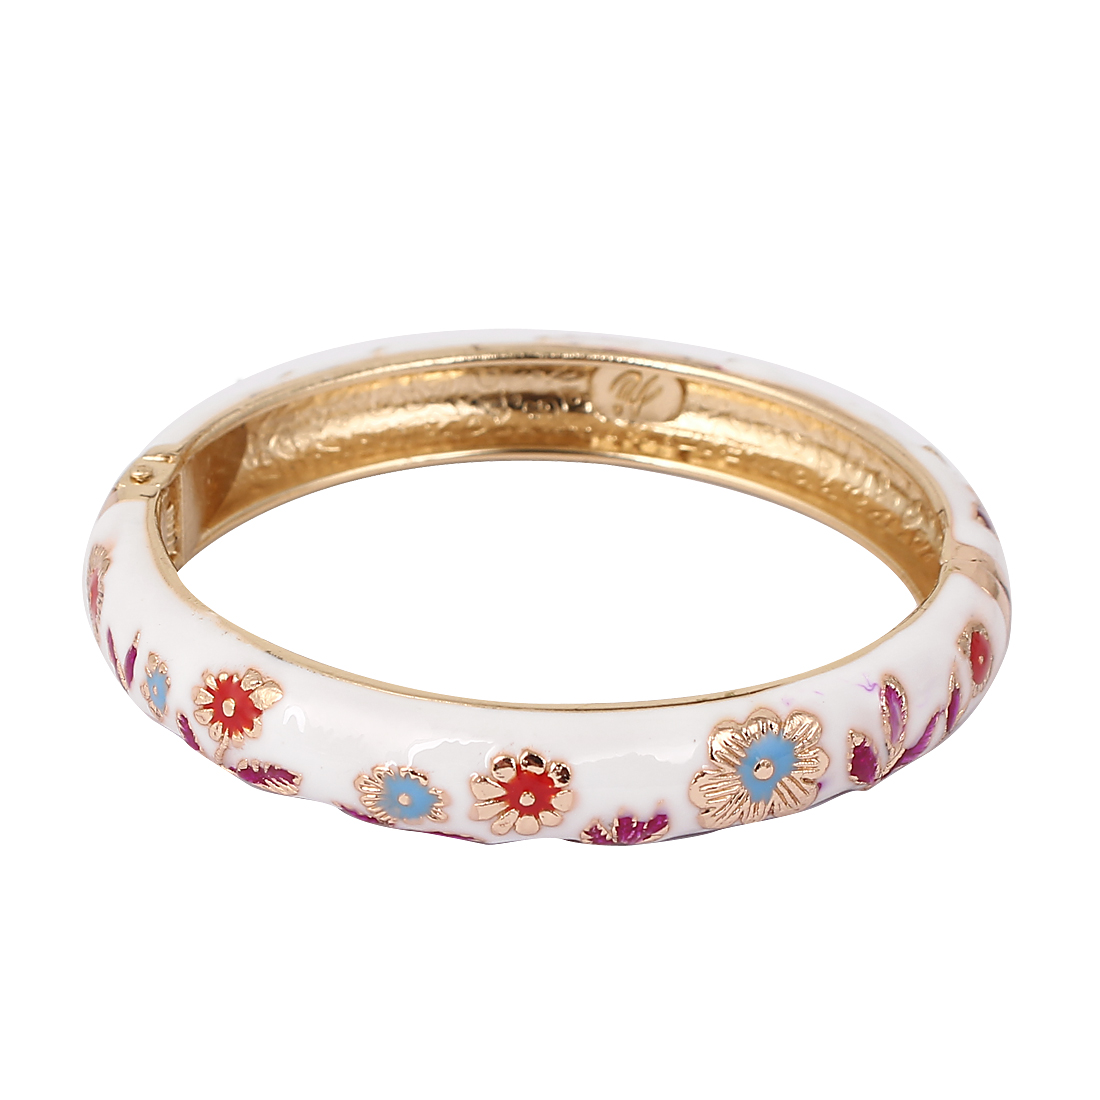 Women Girls 2.7-inch Dia White Hinged Wrist Enamel Bracelet Bangle